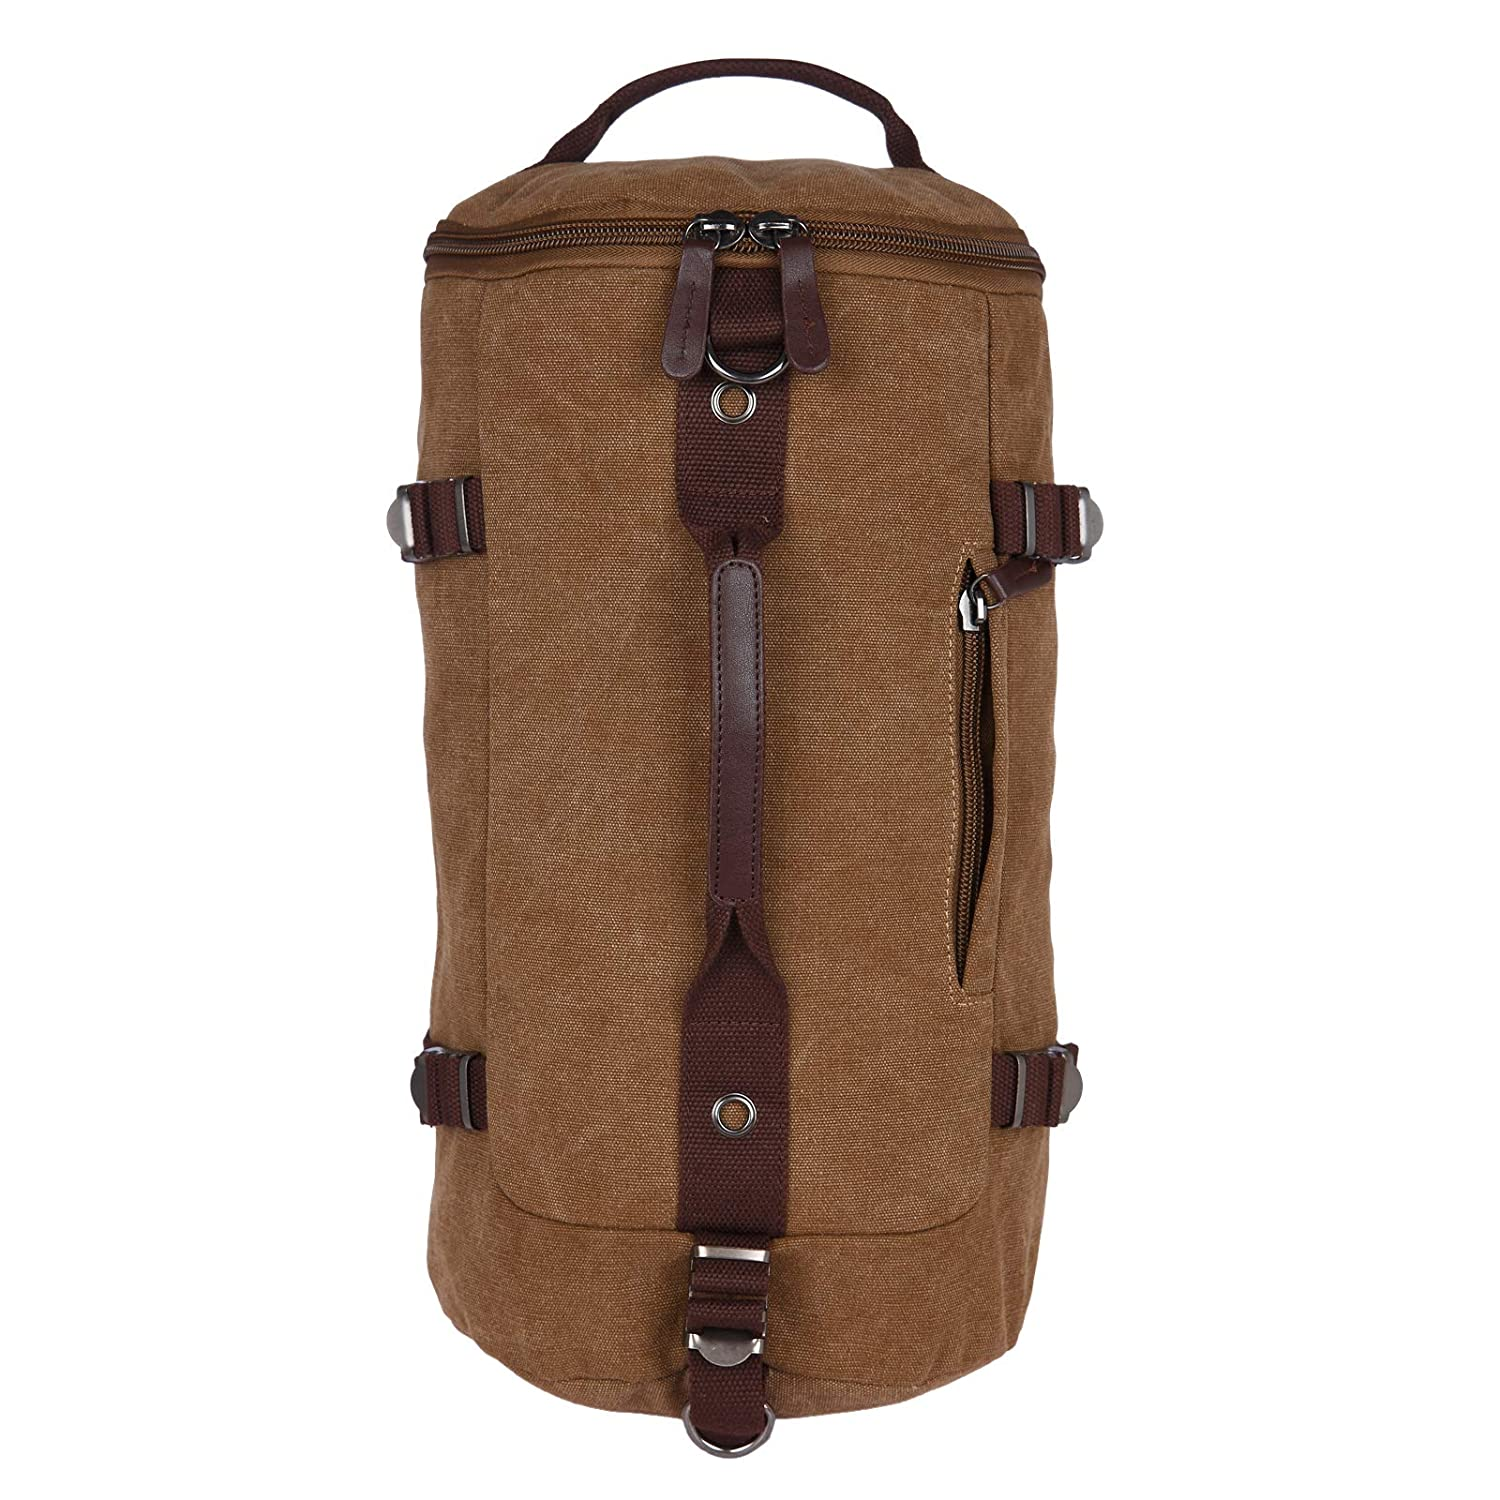 FUR JADEN Canvas Khaki Duffle Travel Bag with Backpack Straps and Long  Shoulder Strap  Amazon.in  Bags b543ea2724d4f